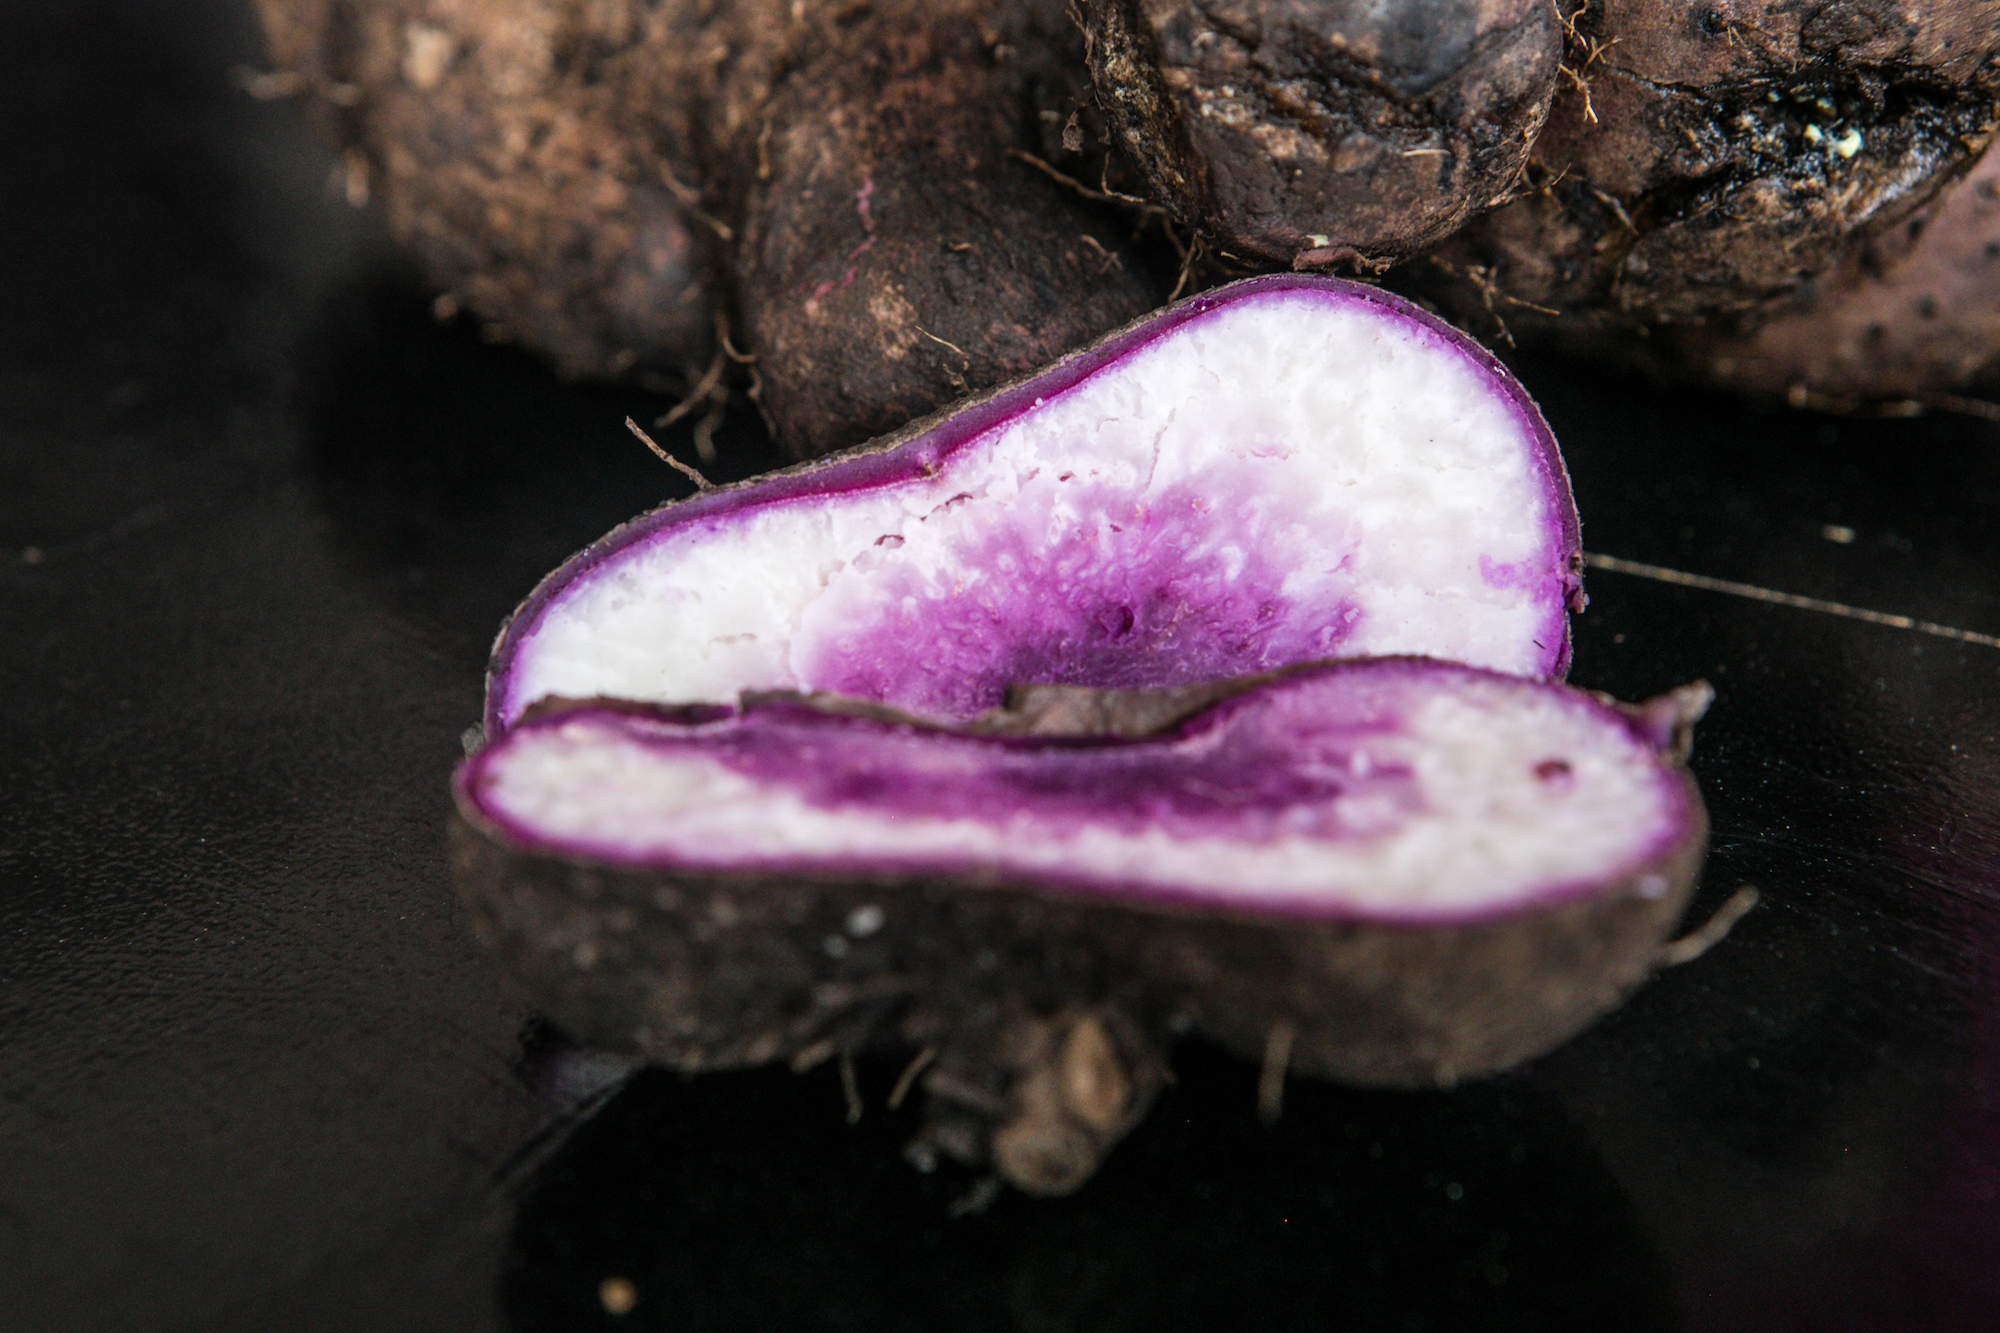 Ube, or ubi as the people of Bohol call it, is also internationally known as purple yam